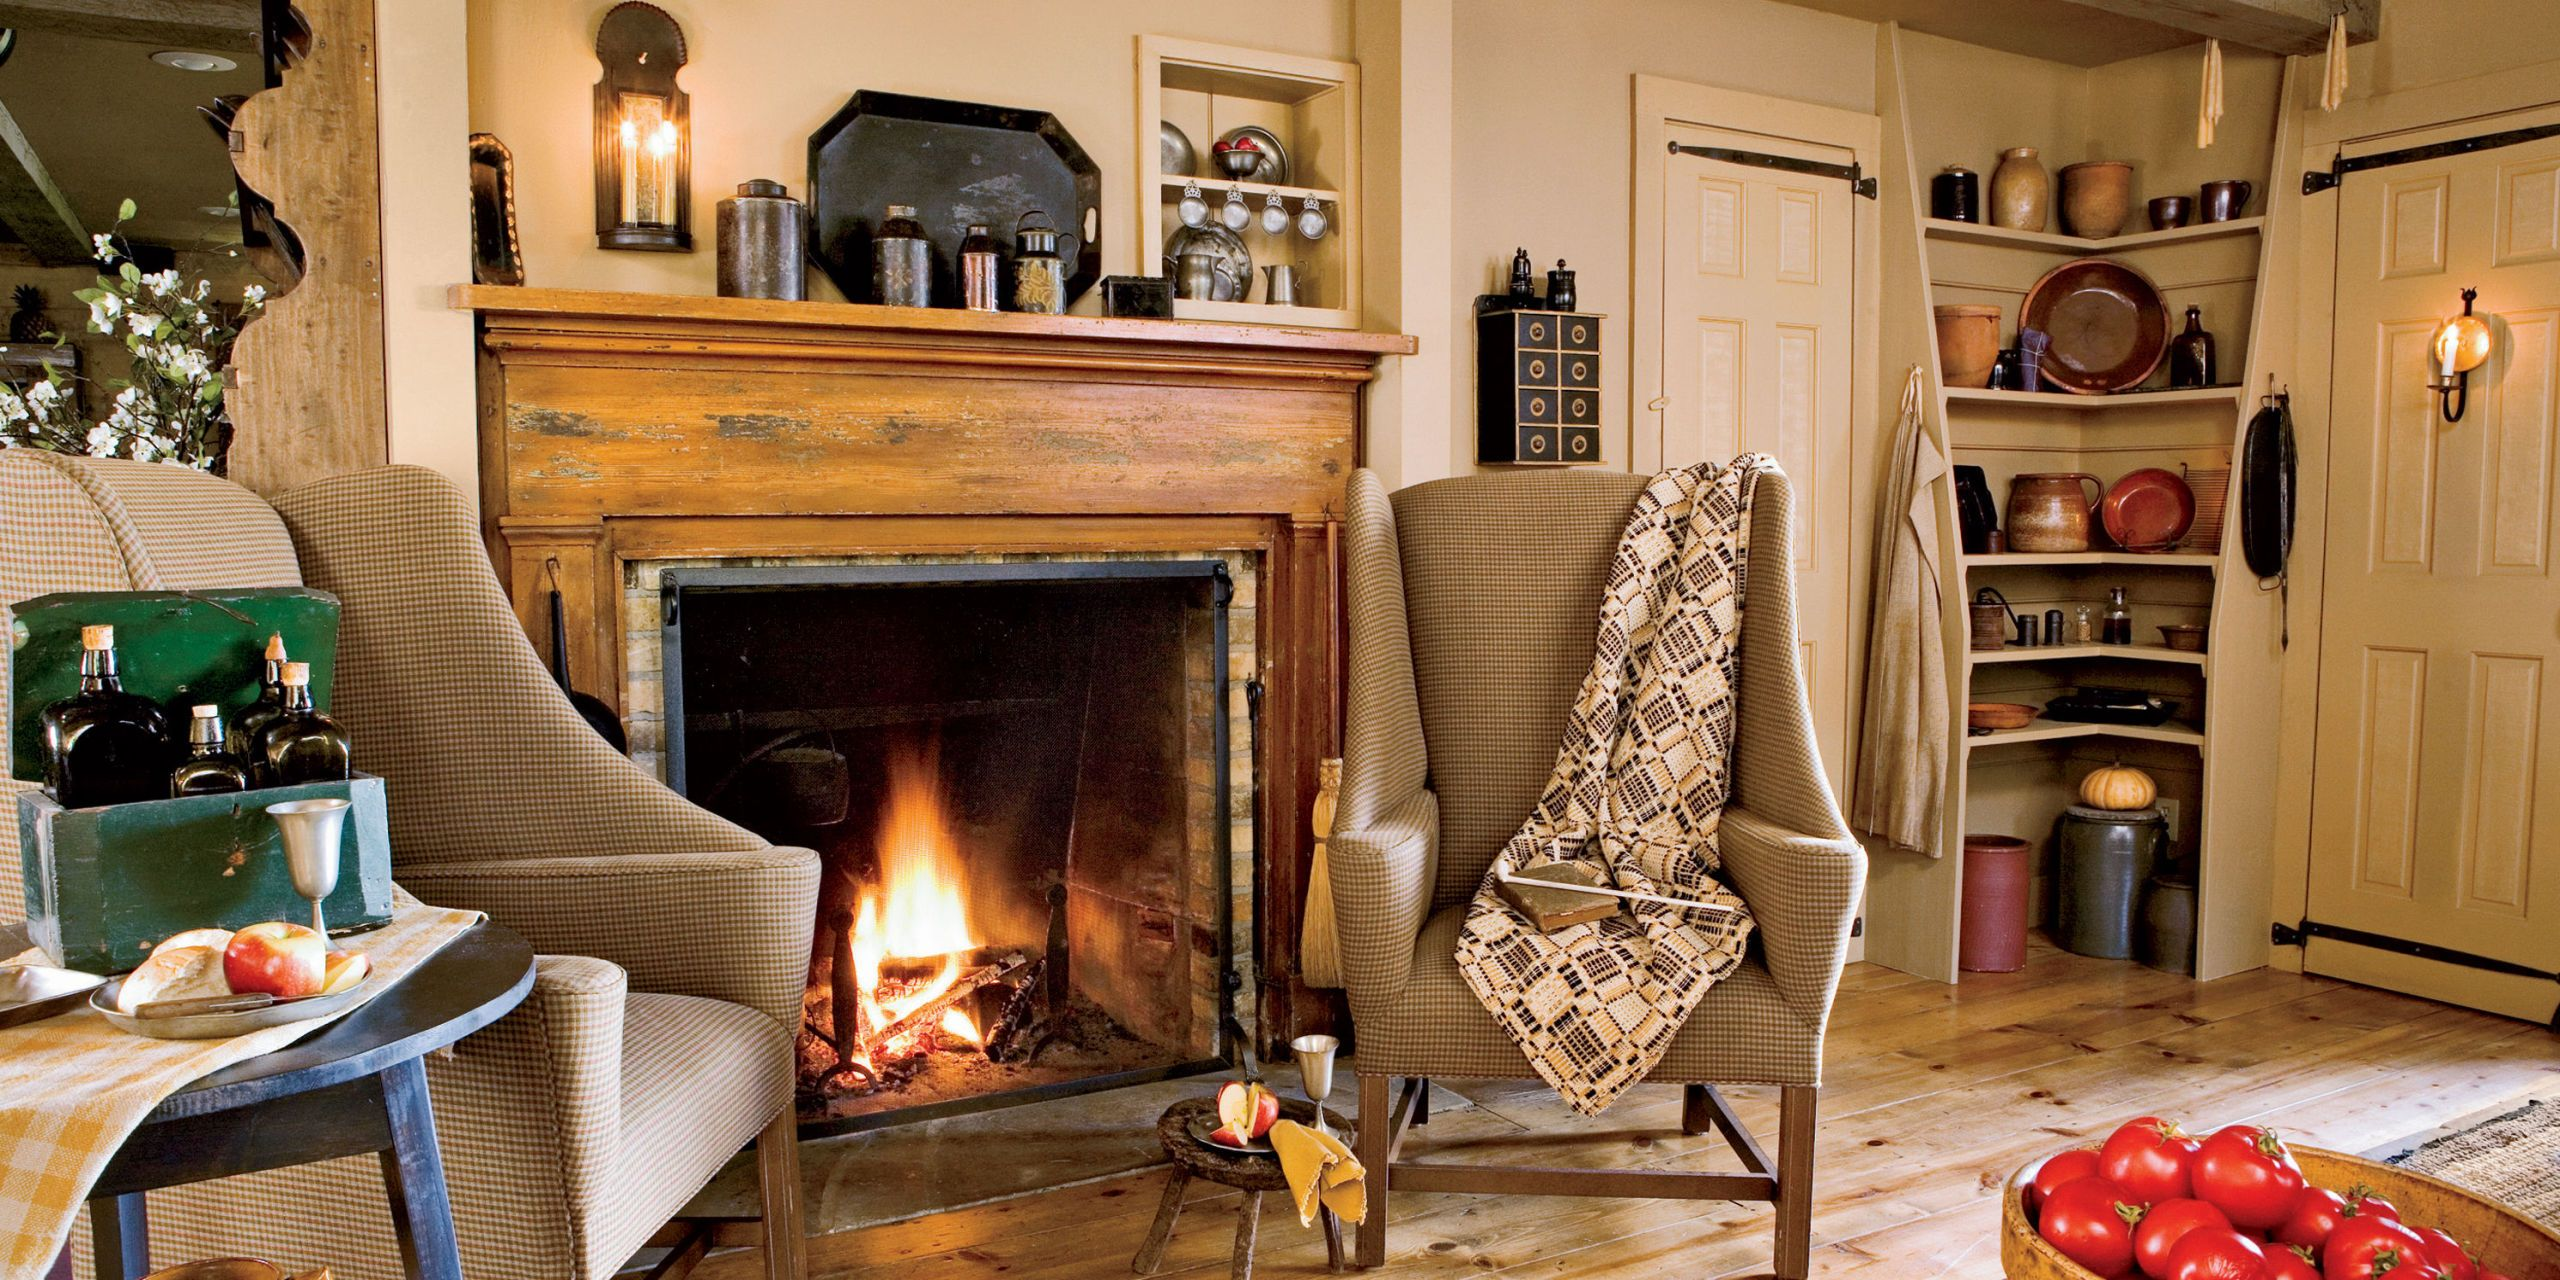 Superieur Get Inspired To Re Do Your Living Space With Our Favorite Fireplace Designs  And Mantel Ideas.